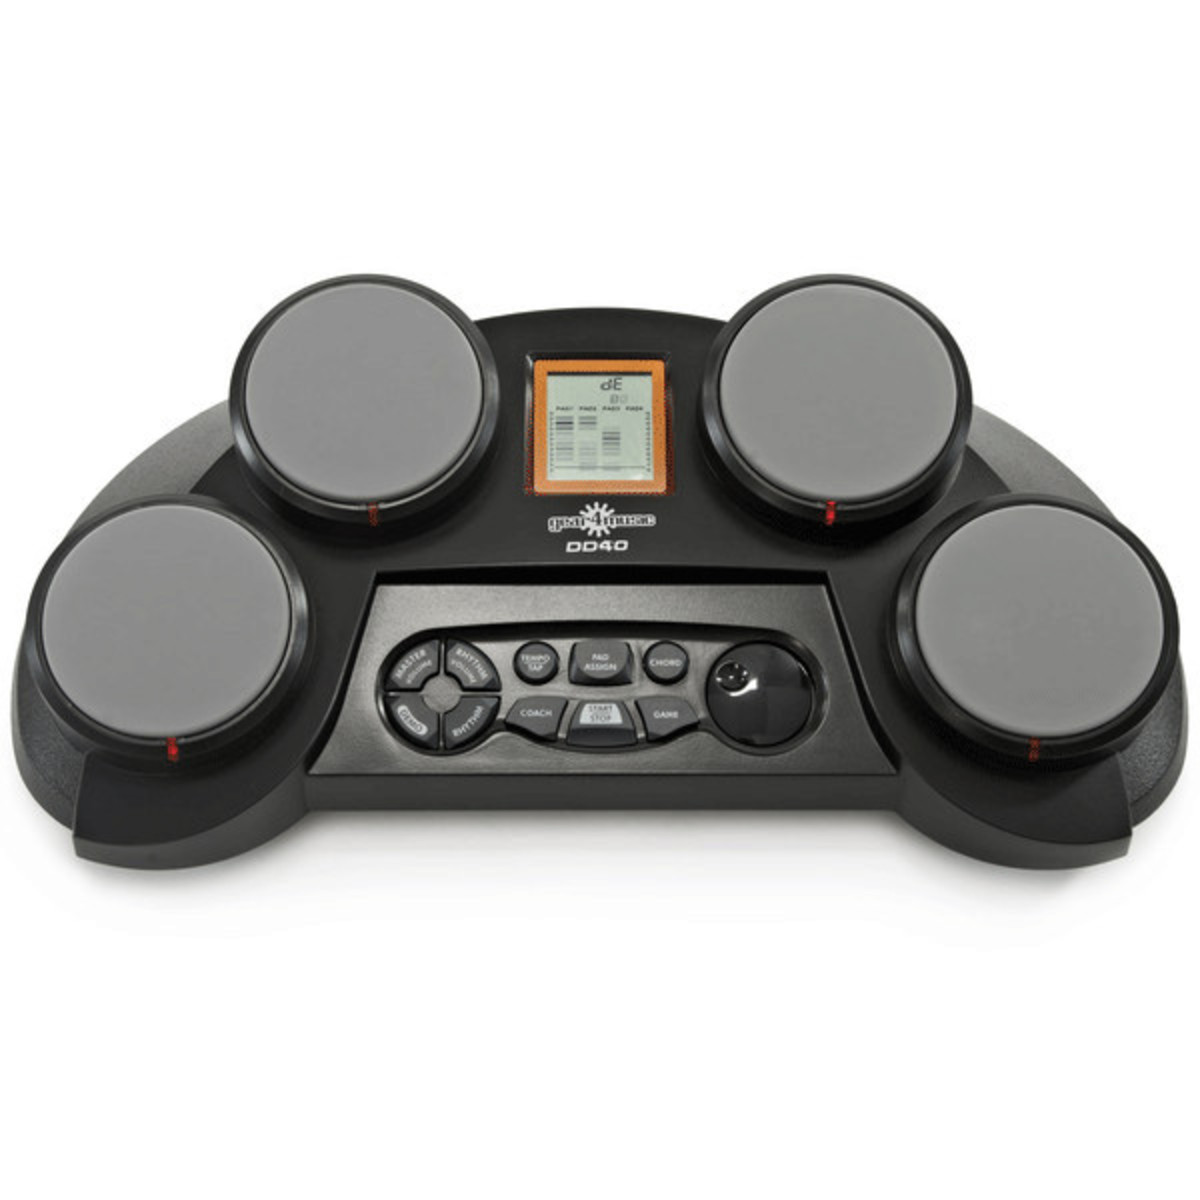 dd40 electronic drum pads by gear4music nearly new at. Black Bedroom Furniture Sets. Home Design Ideas